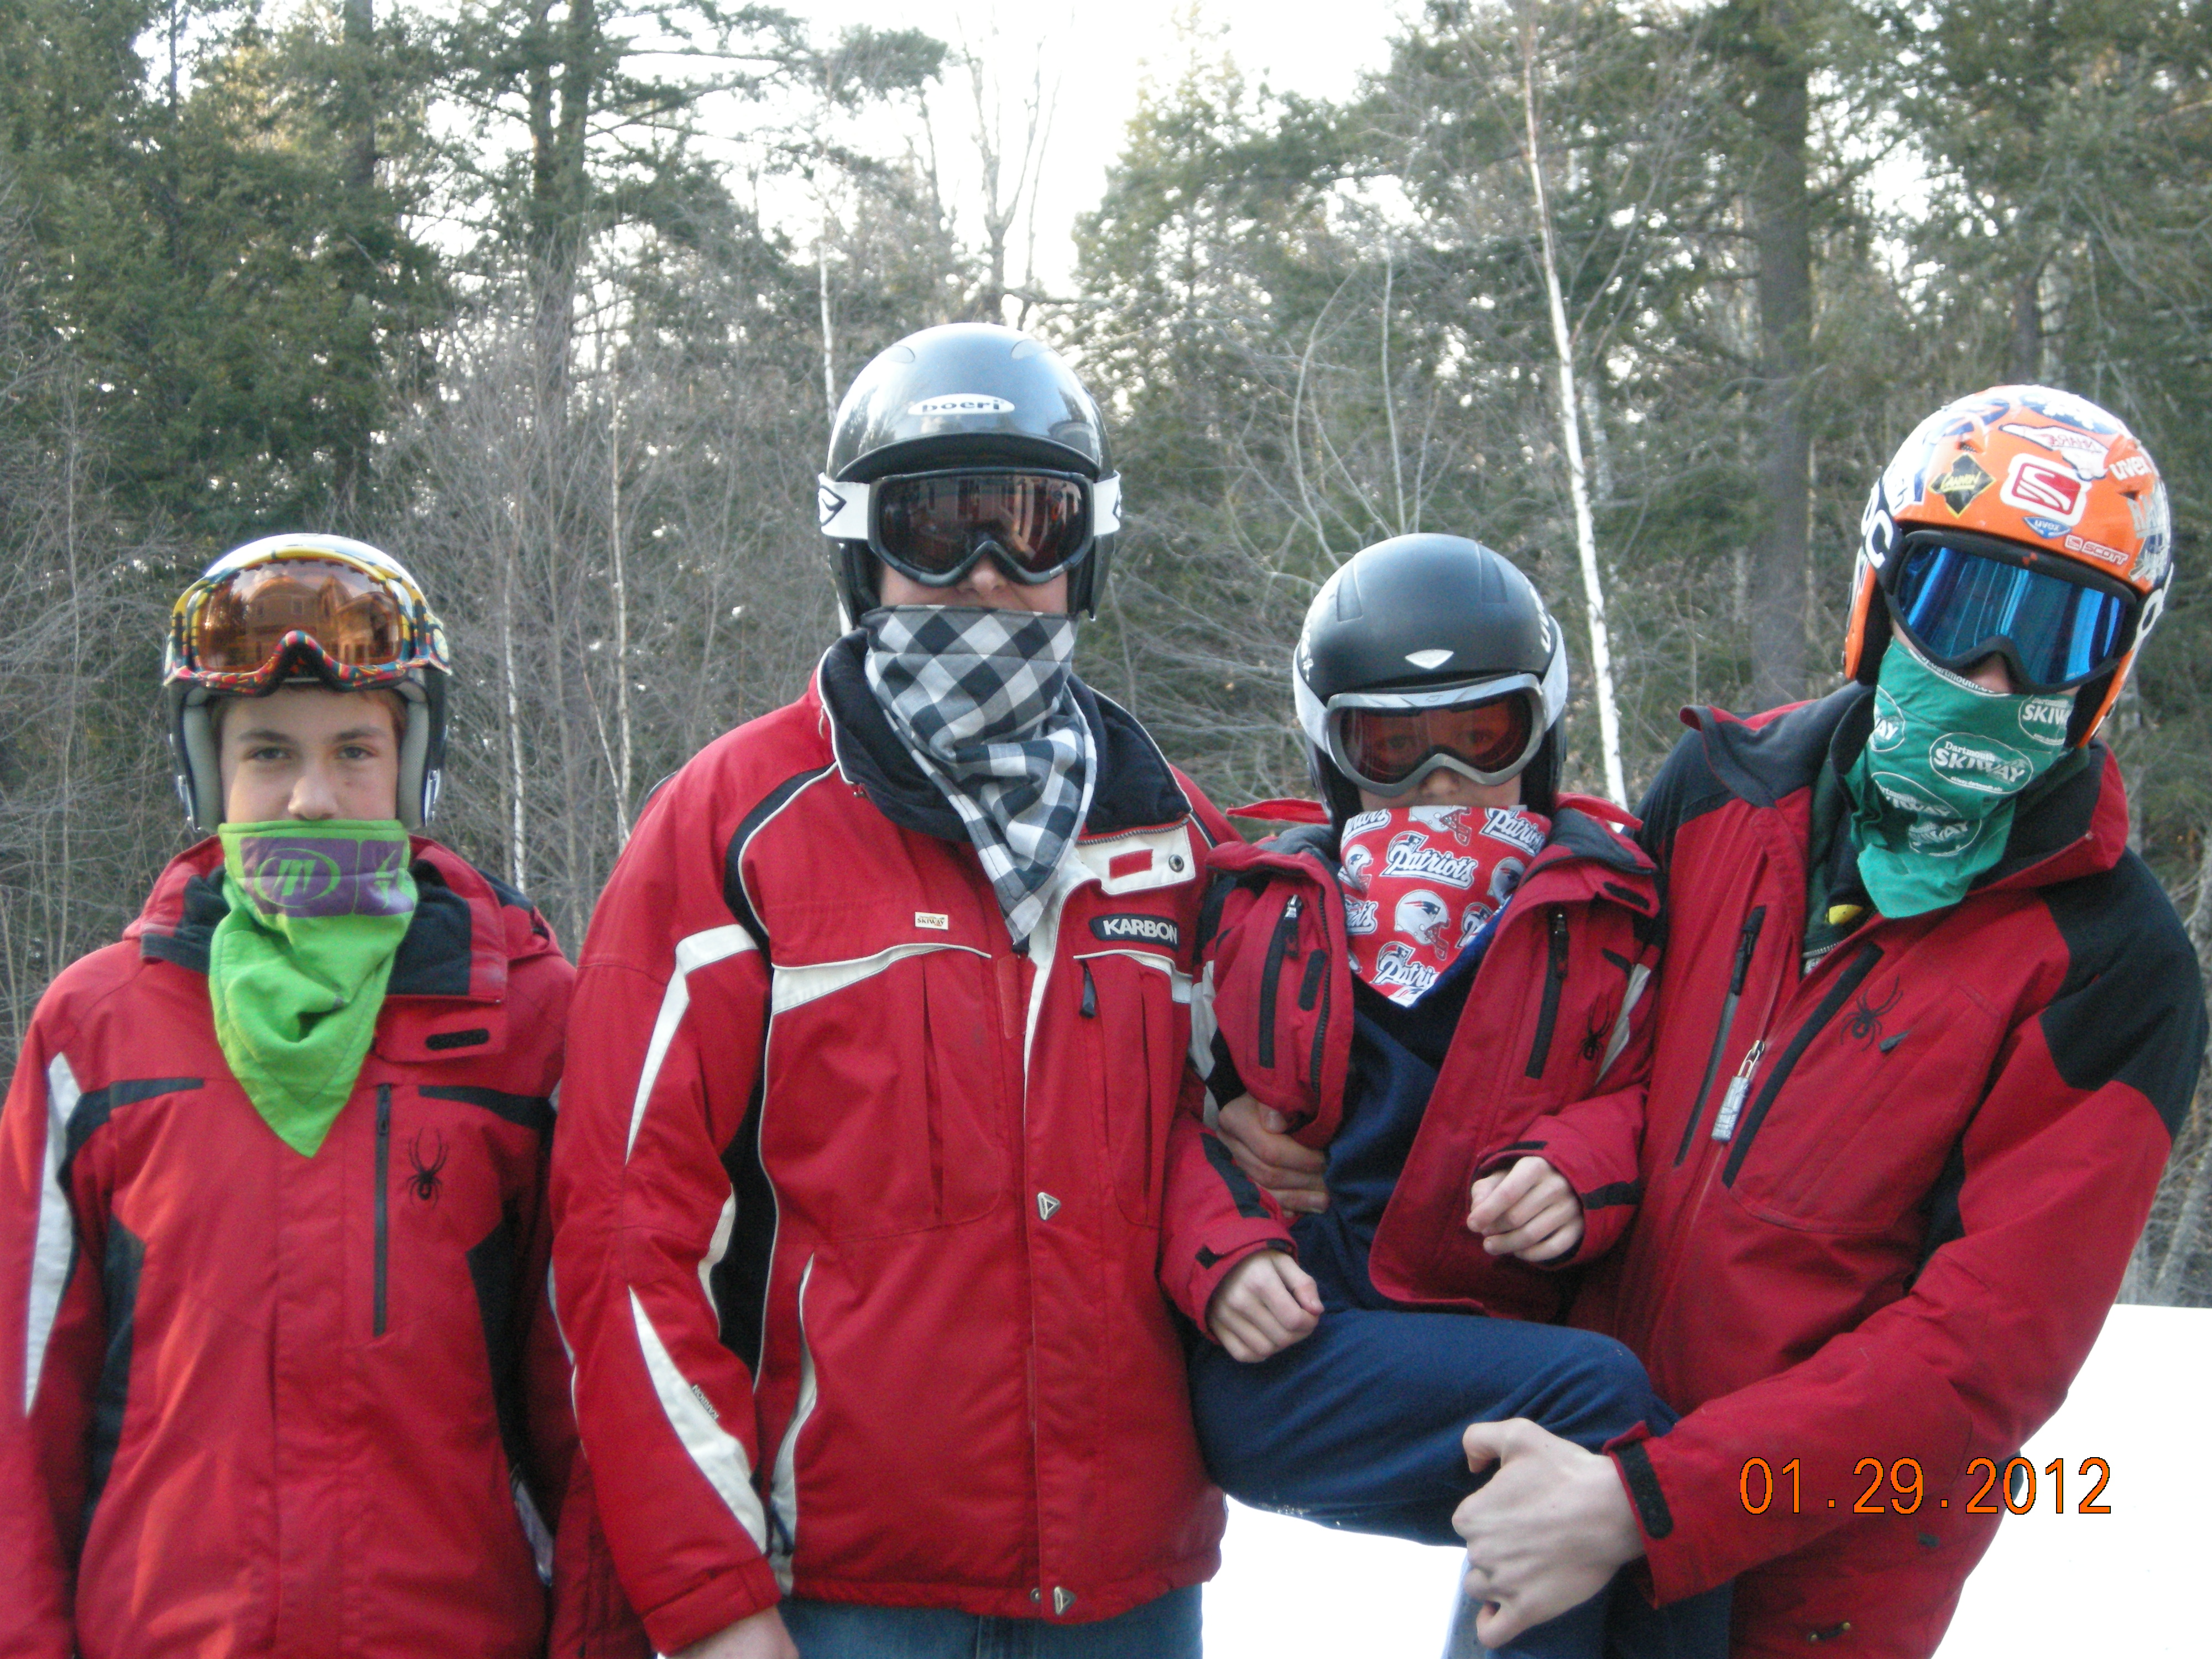 Picture of Fleece Lined Bandanas:  How to Prevent Frostbite While Enjoying Snow Sports